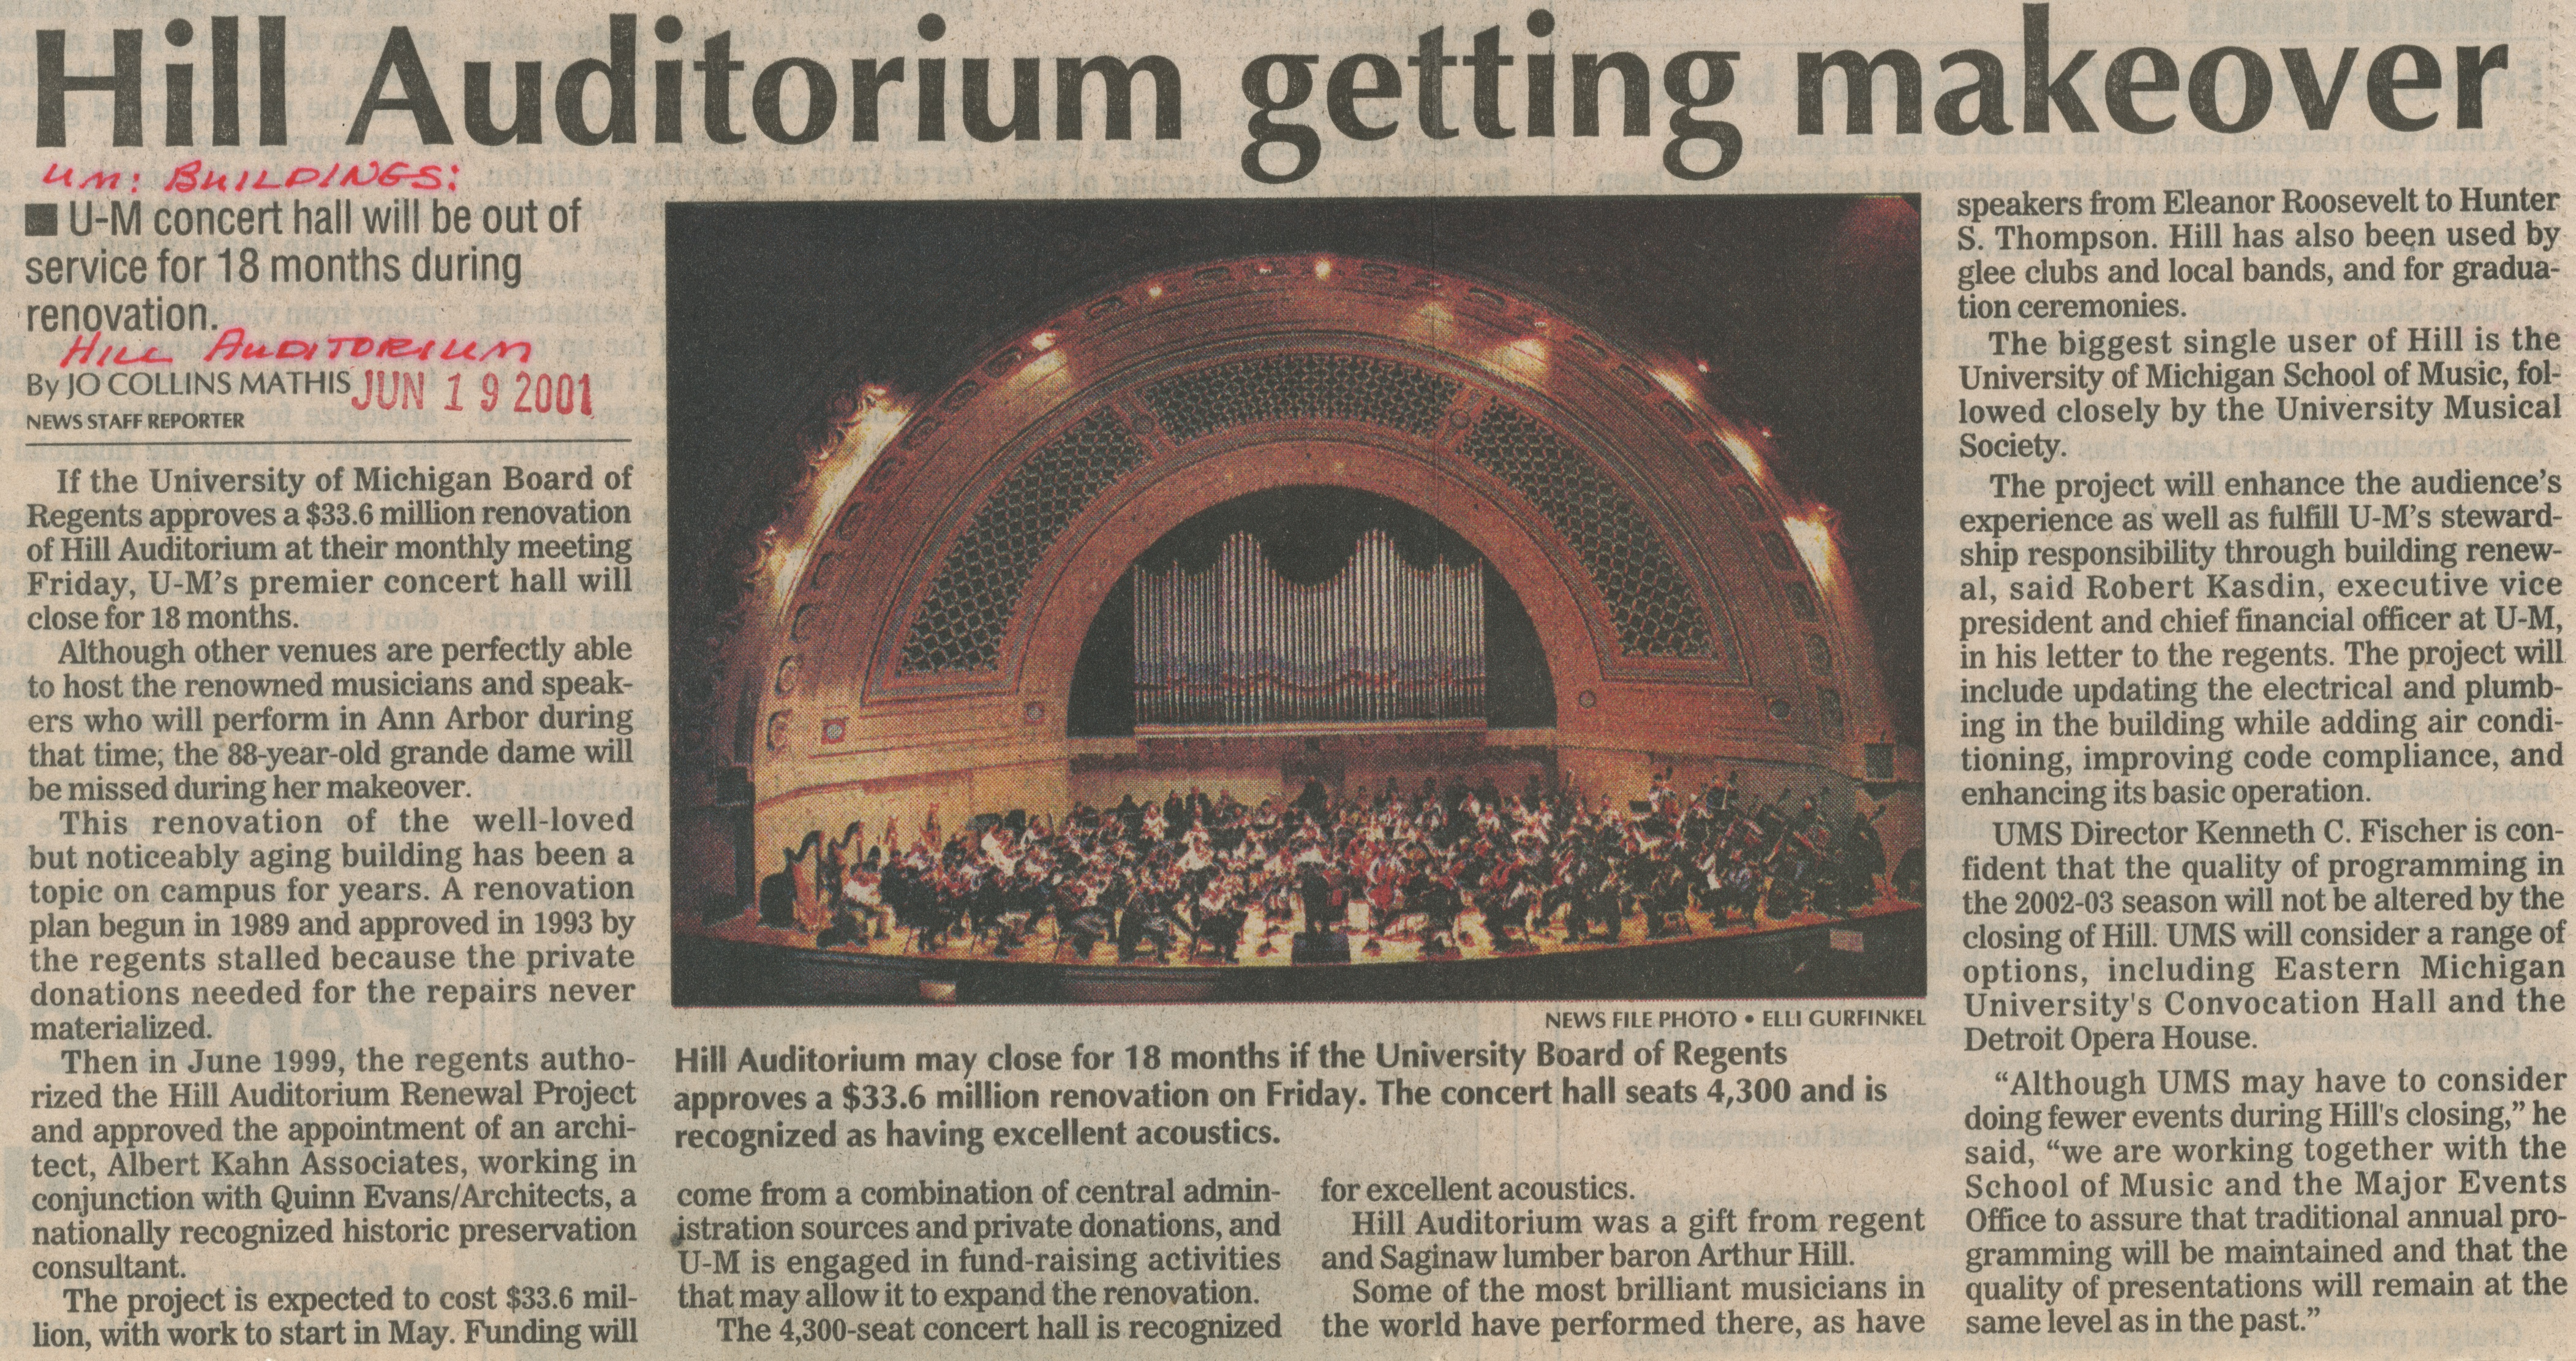 Hill Auditorium Getting Makeover: U-M Concert Hall Will Be Out Of Service For 18 Months During Renovation image